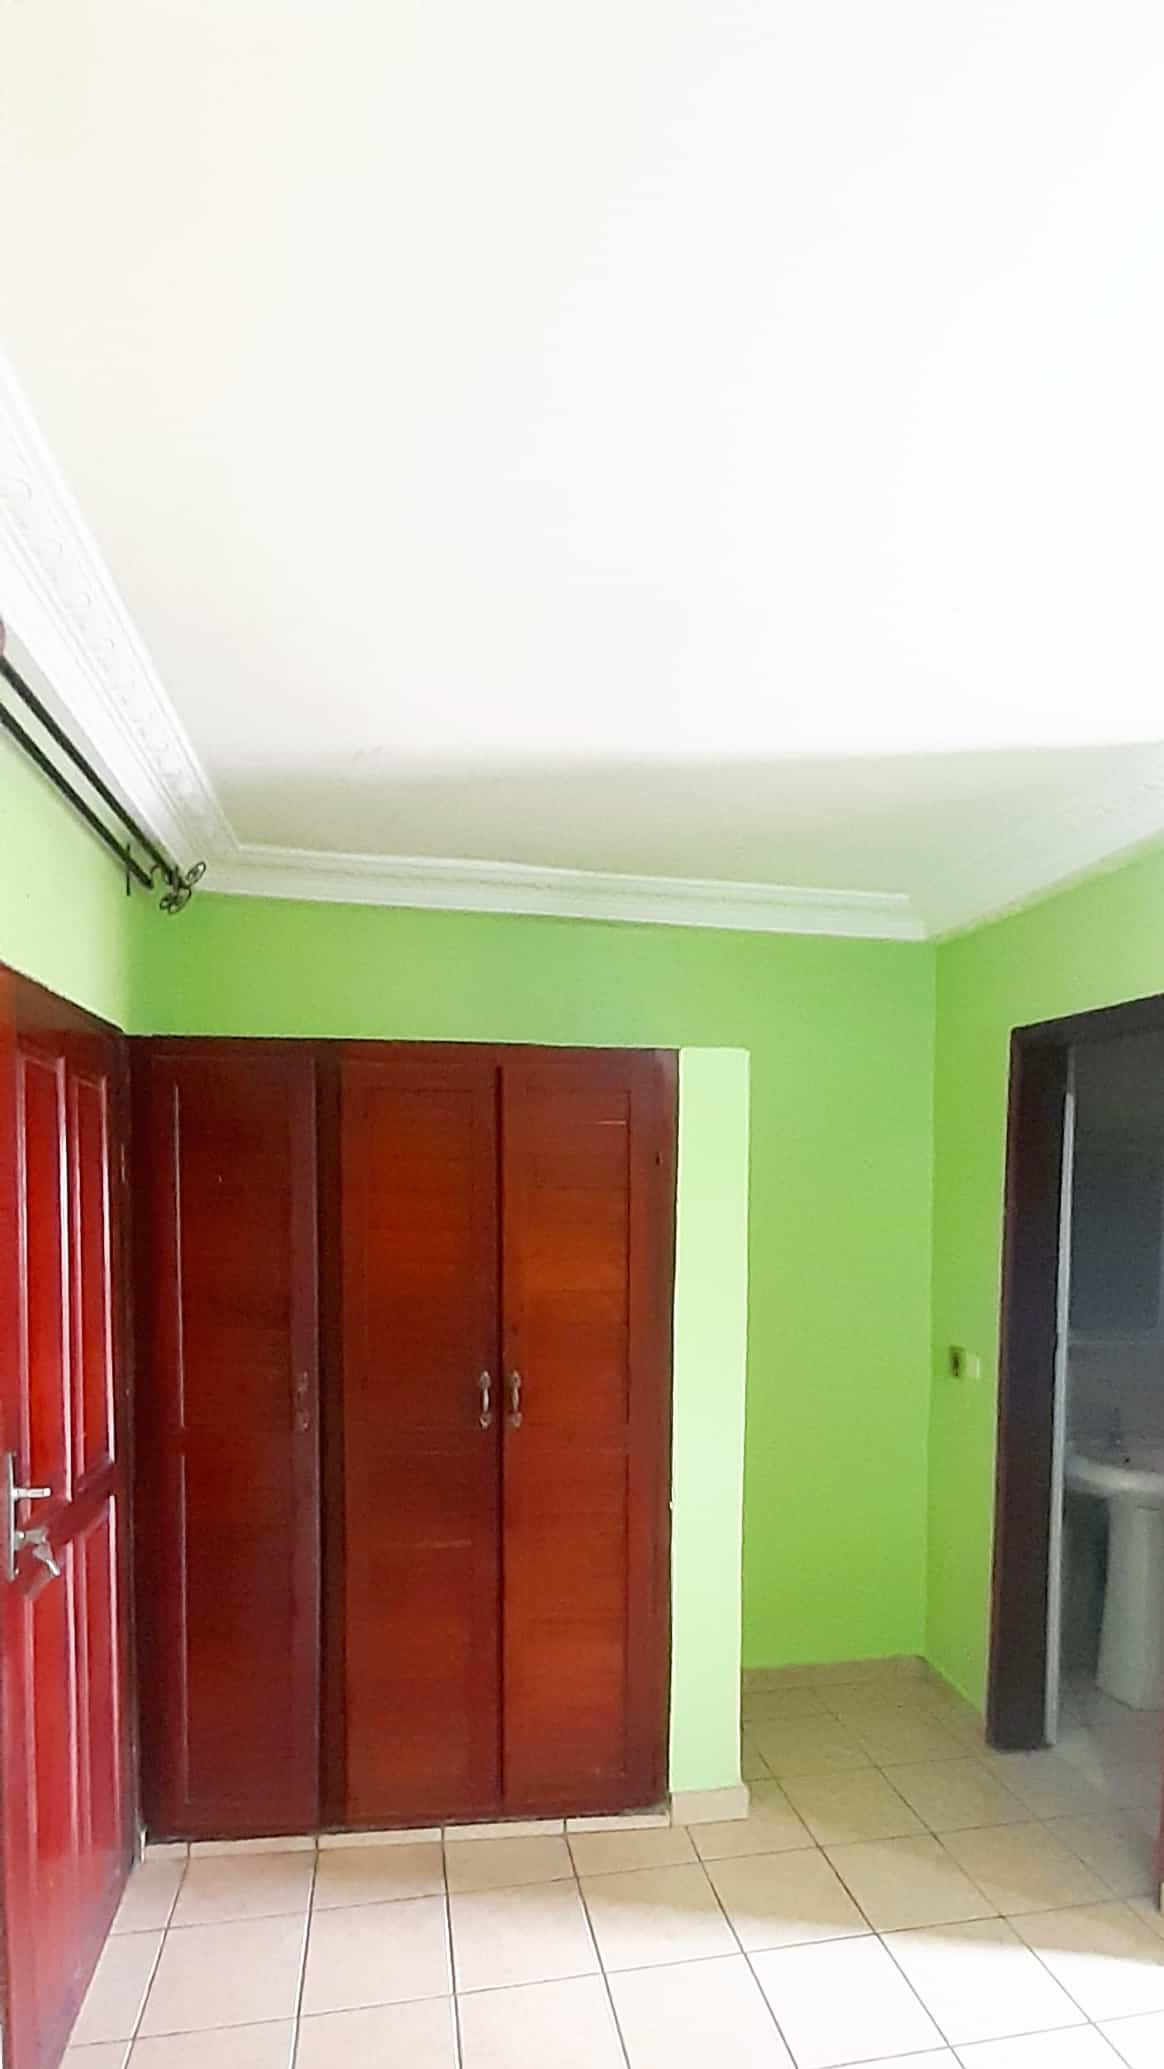 Studio to rent - Douala, Akwa I, NDOG-BONG - 85 000 FCFA / month